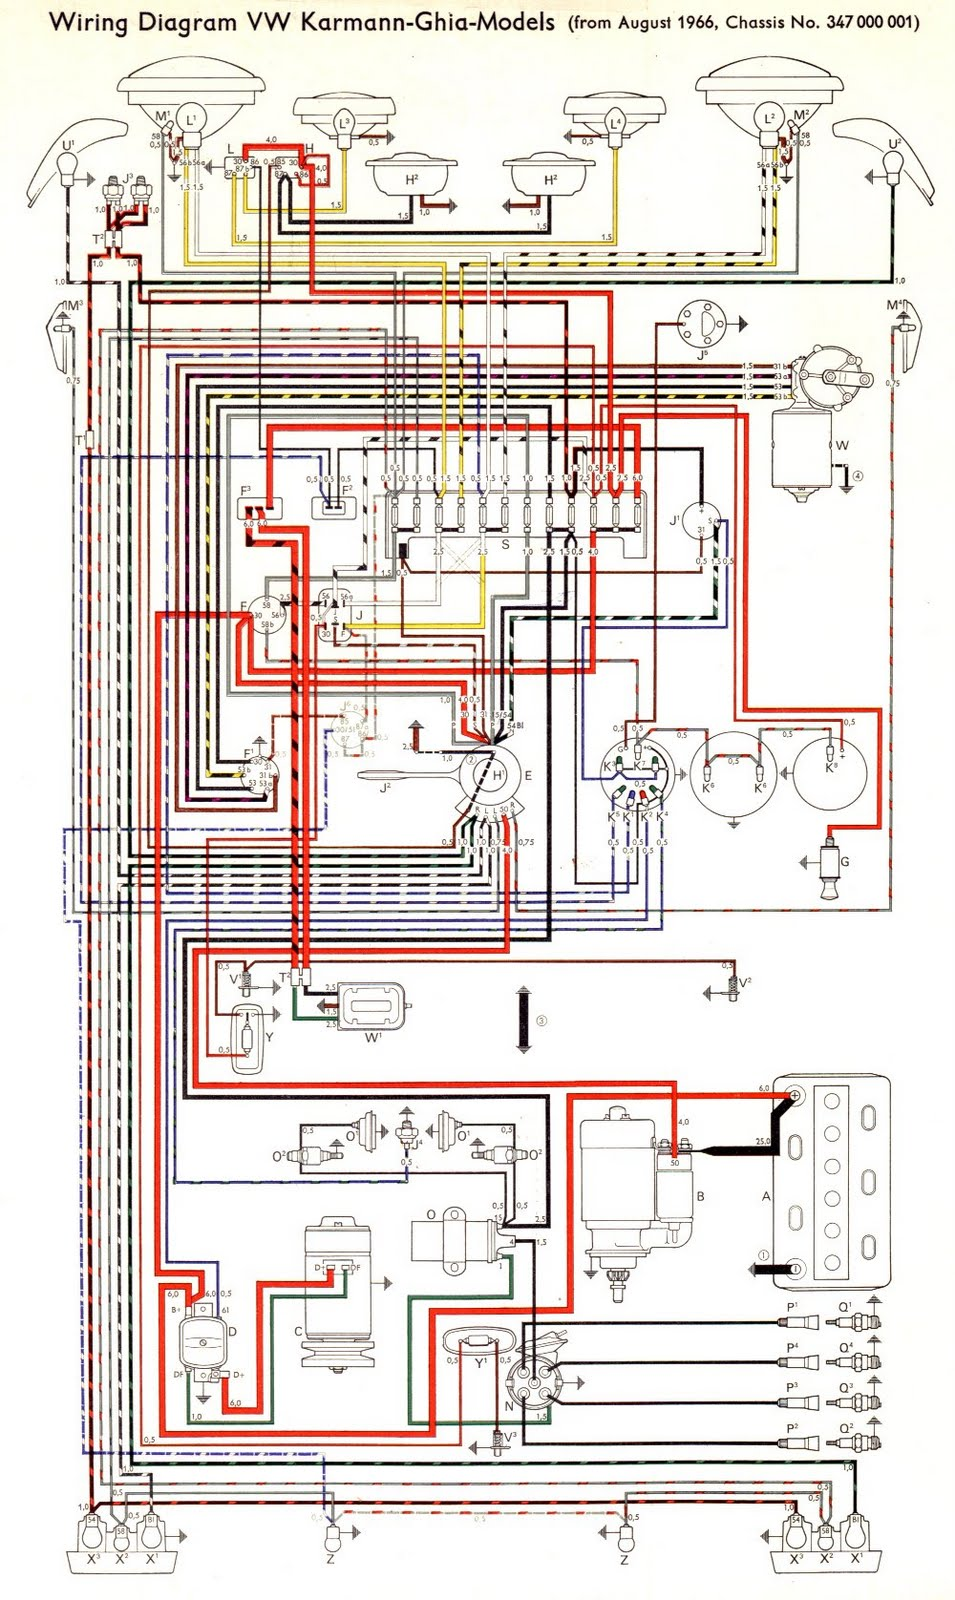 Free Auto Wiring Diagram  1966 Vw Karmann